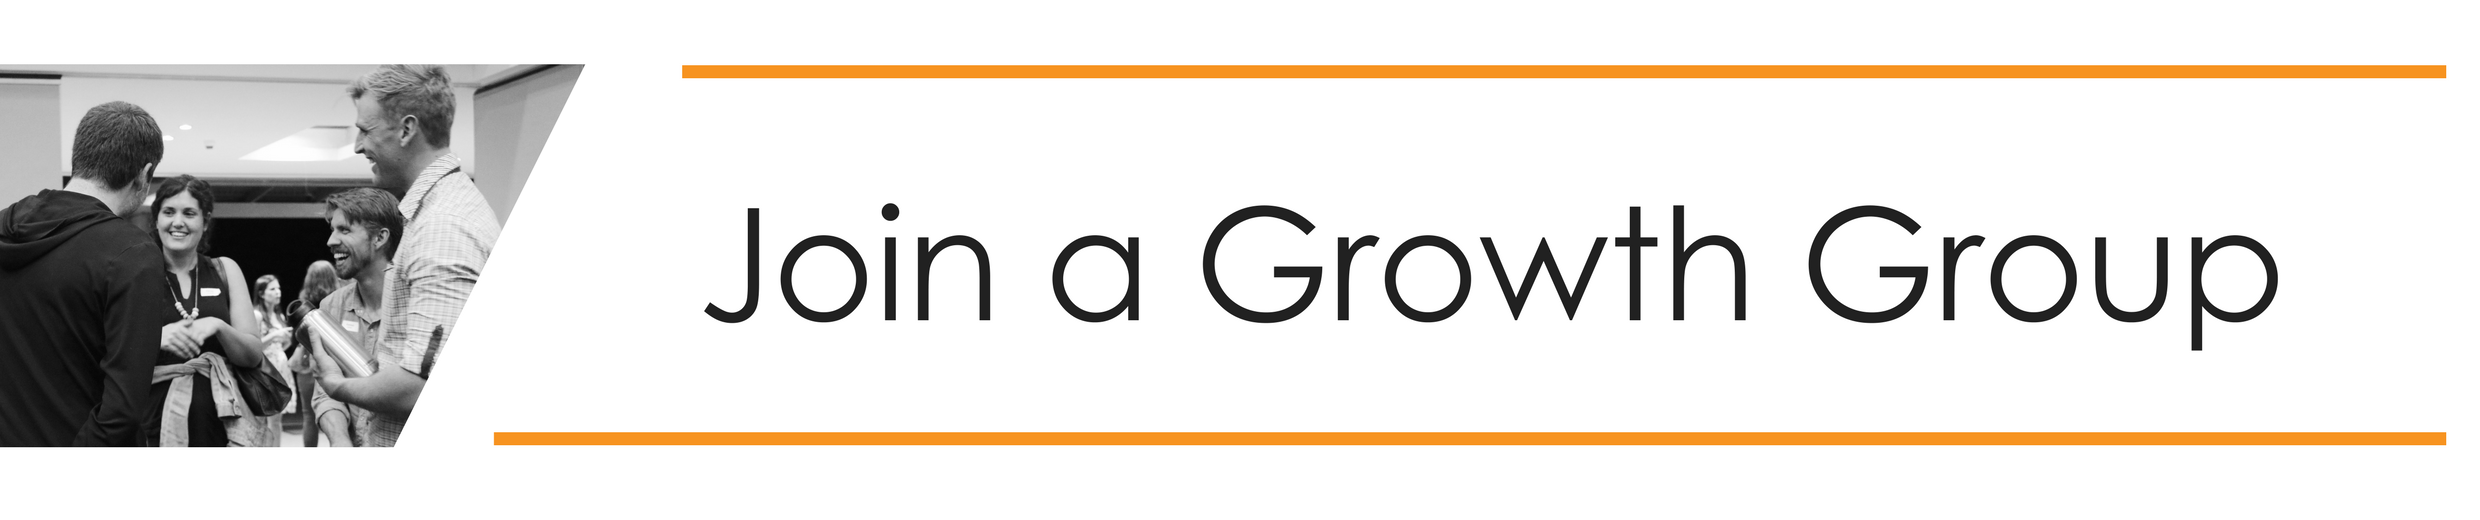 Join A Growth Group.png